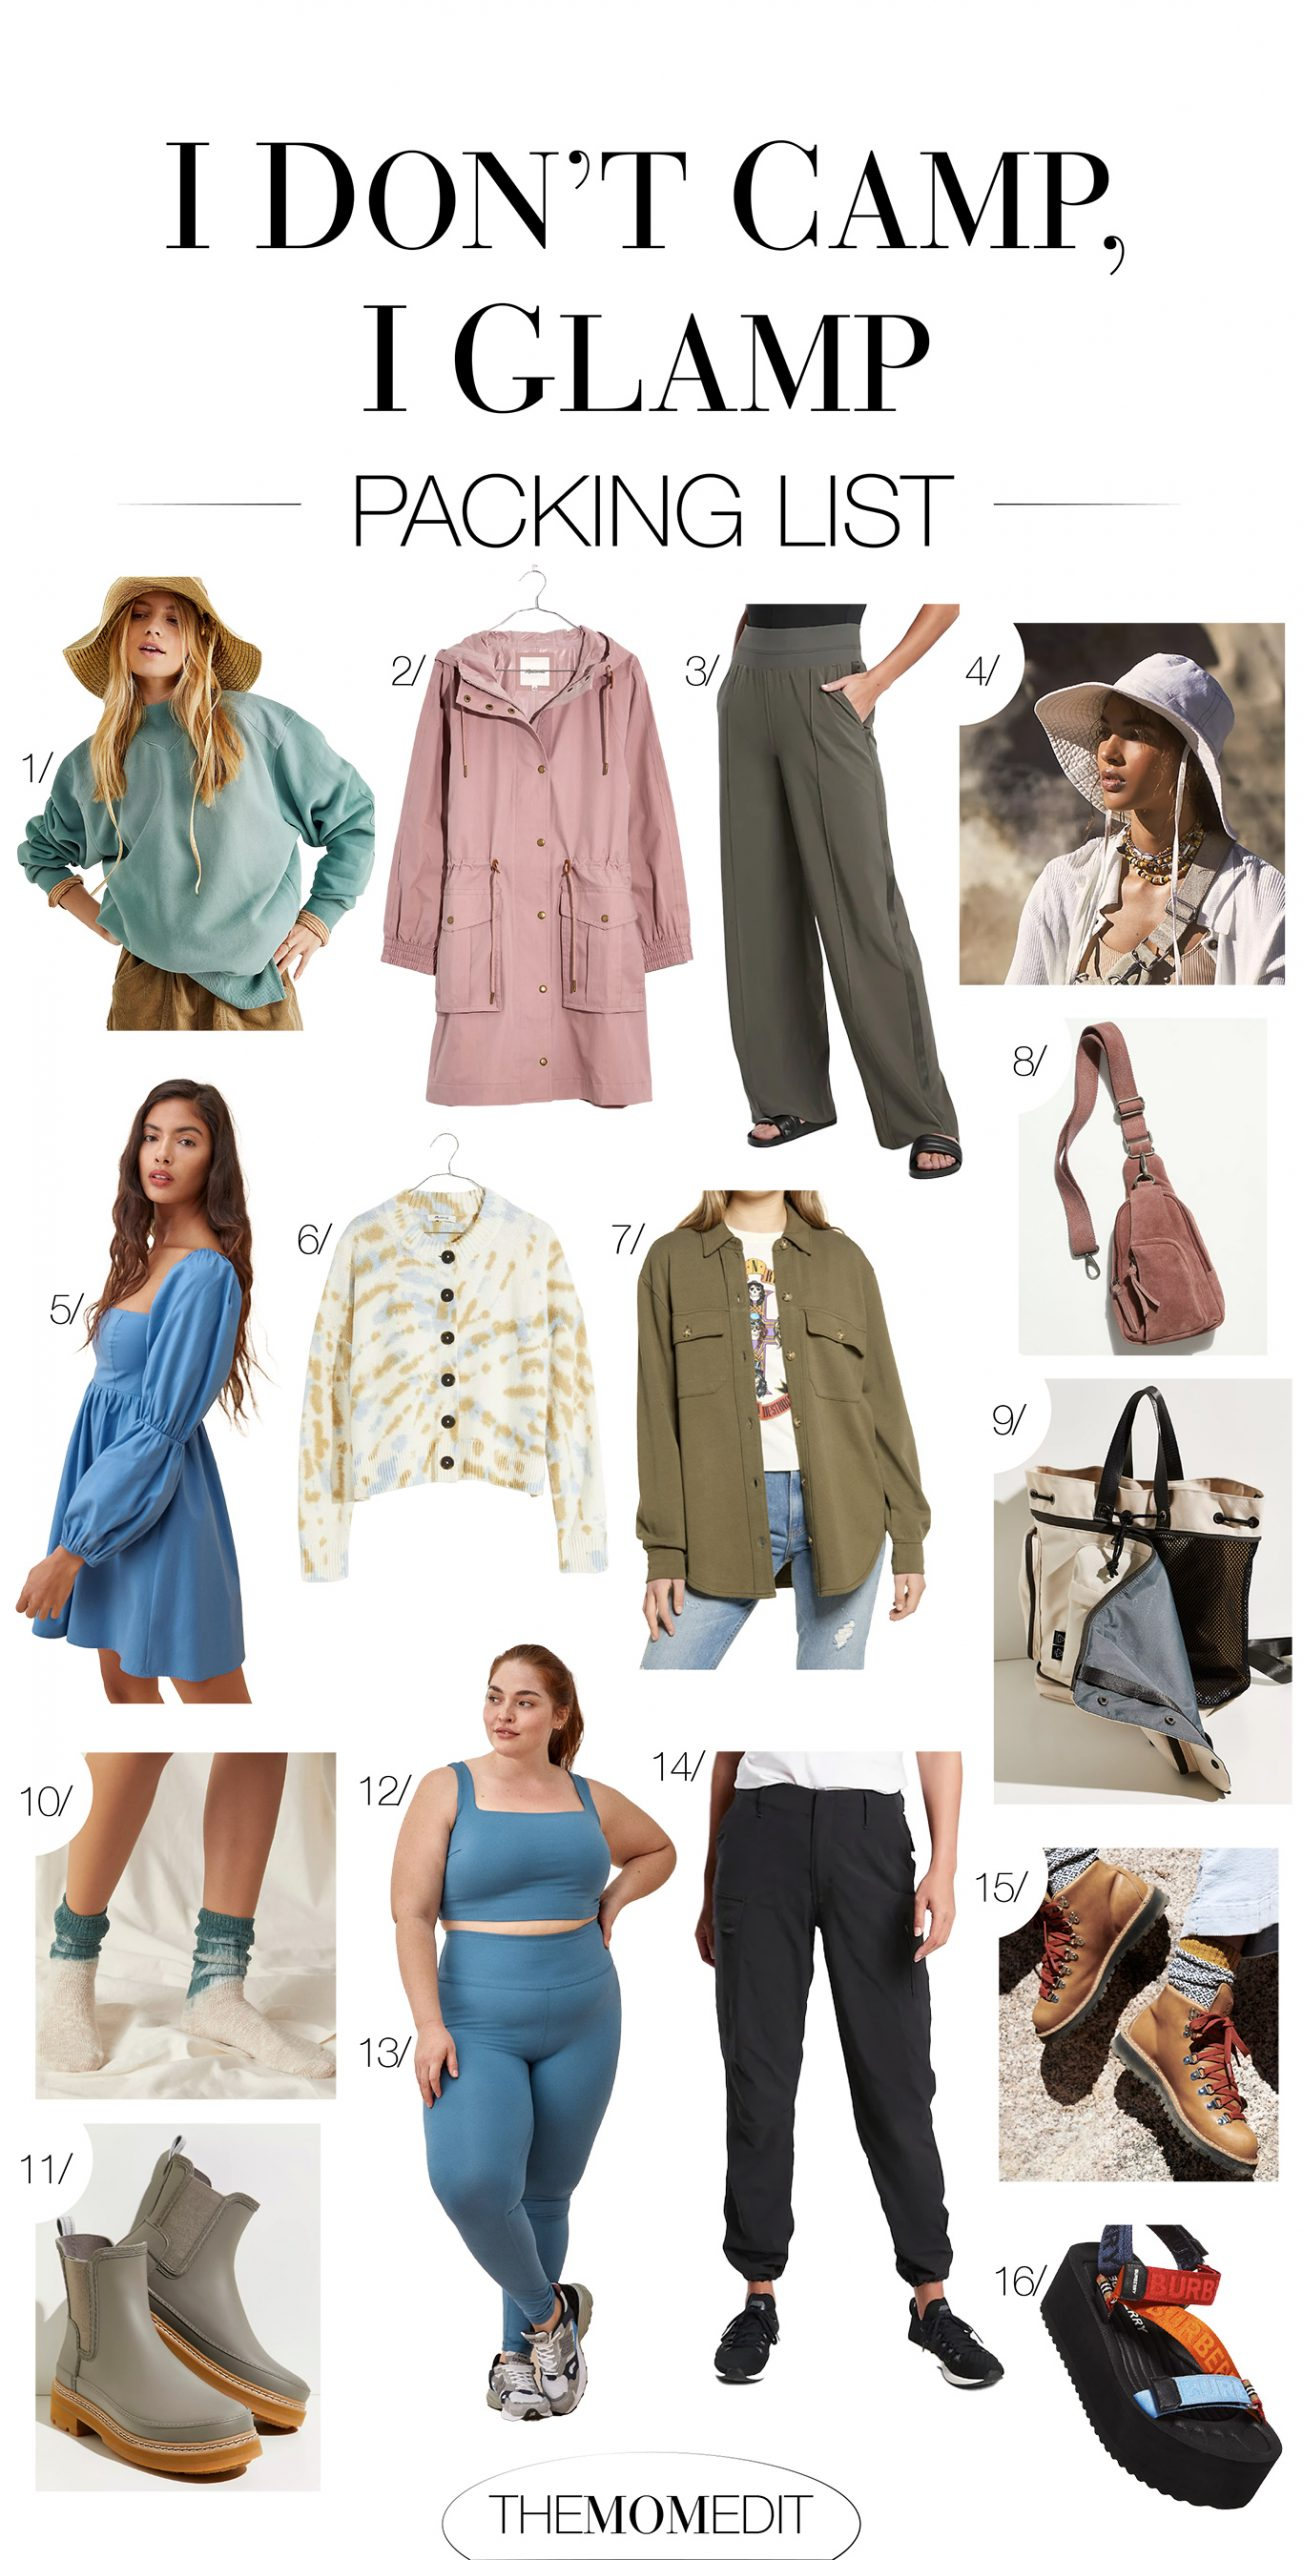 I am, however, an avid glamping girl. For the glamorous camping life, there are a few cute outfit essentials for my packing list.